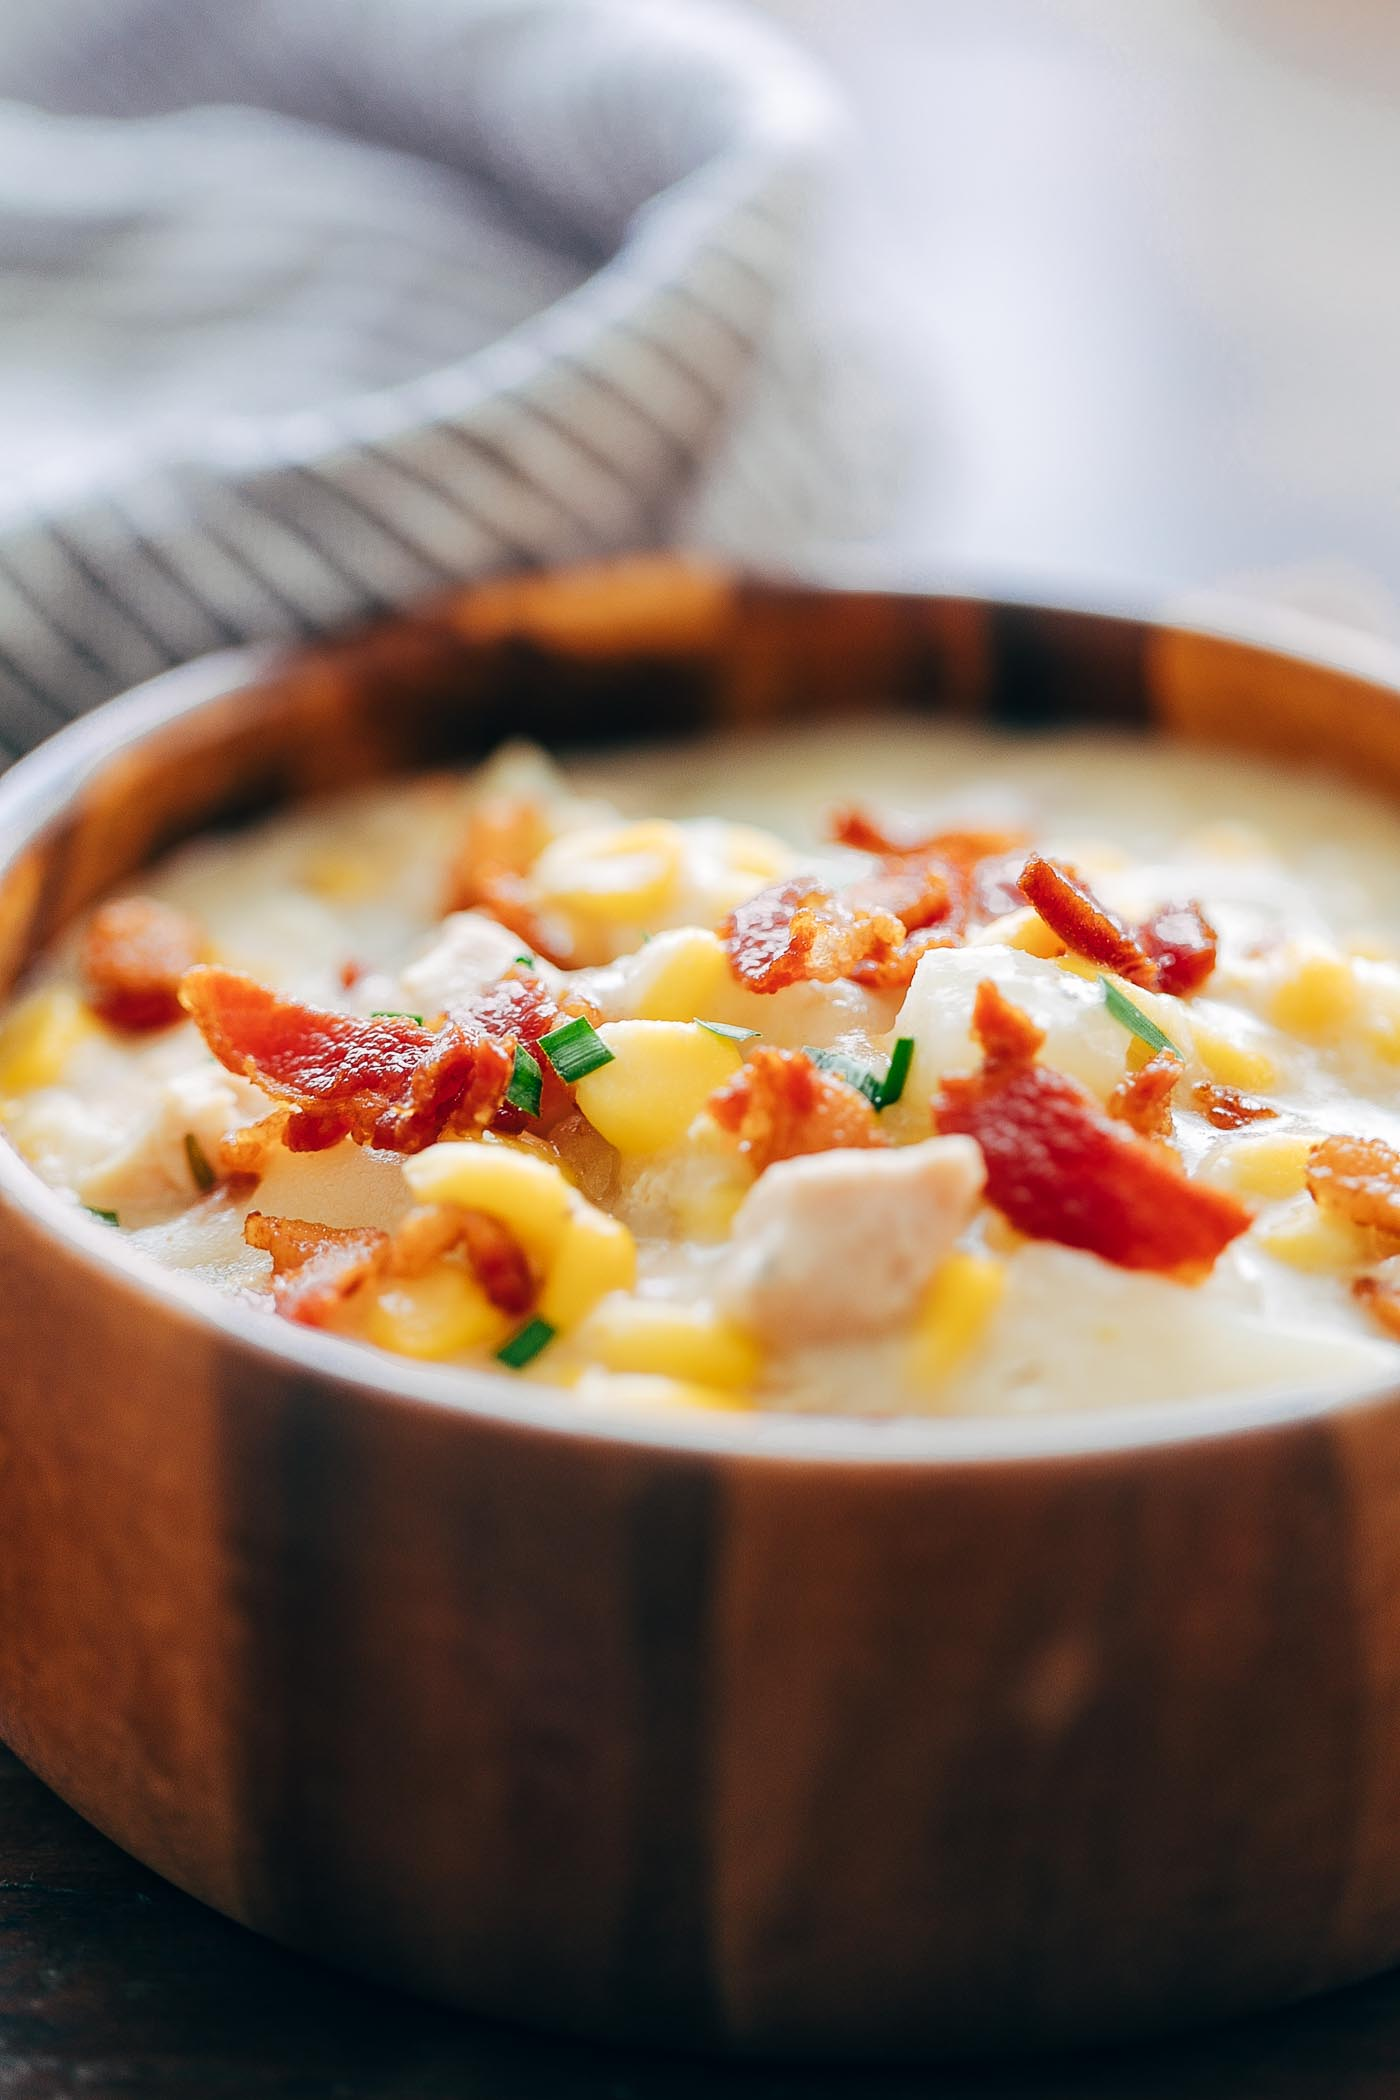 Instant-Pot-Chicken-Potato-Corn-Chowder-with-Bacon-Pressure-Cooker-Recipe-3.jpg